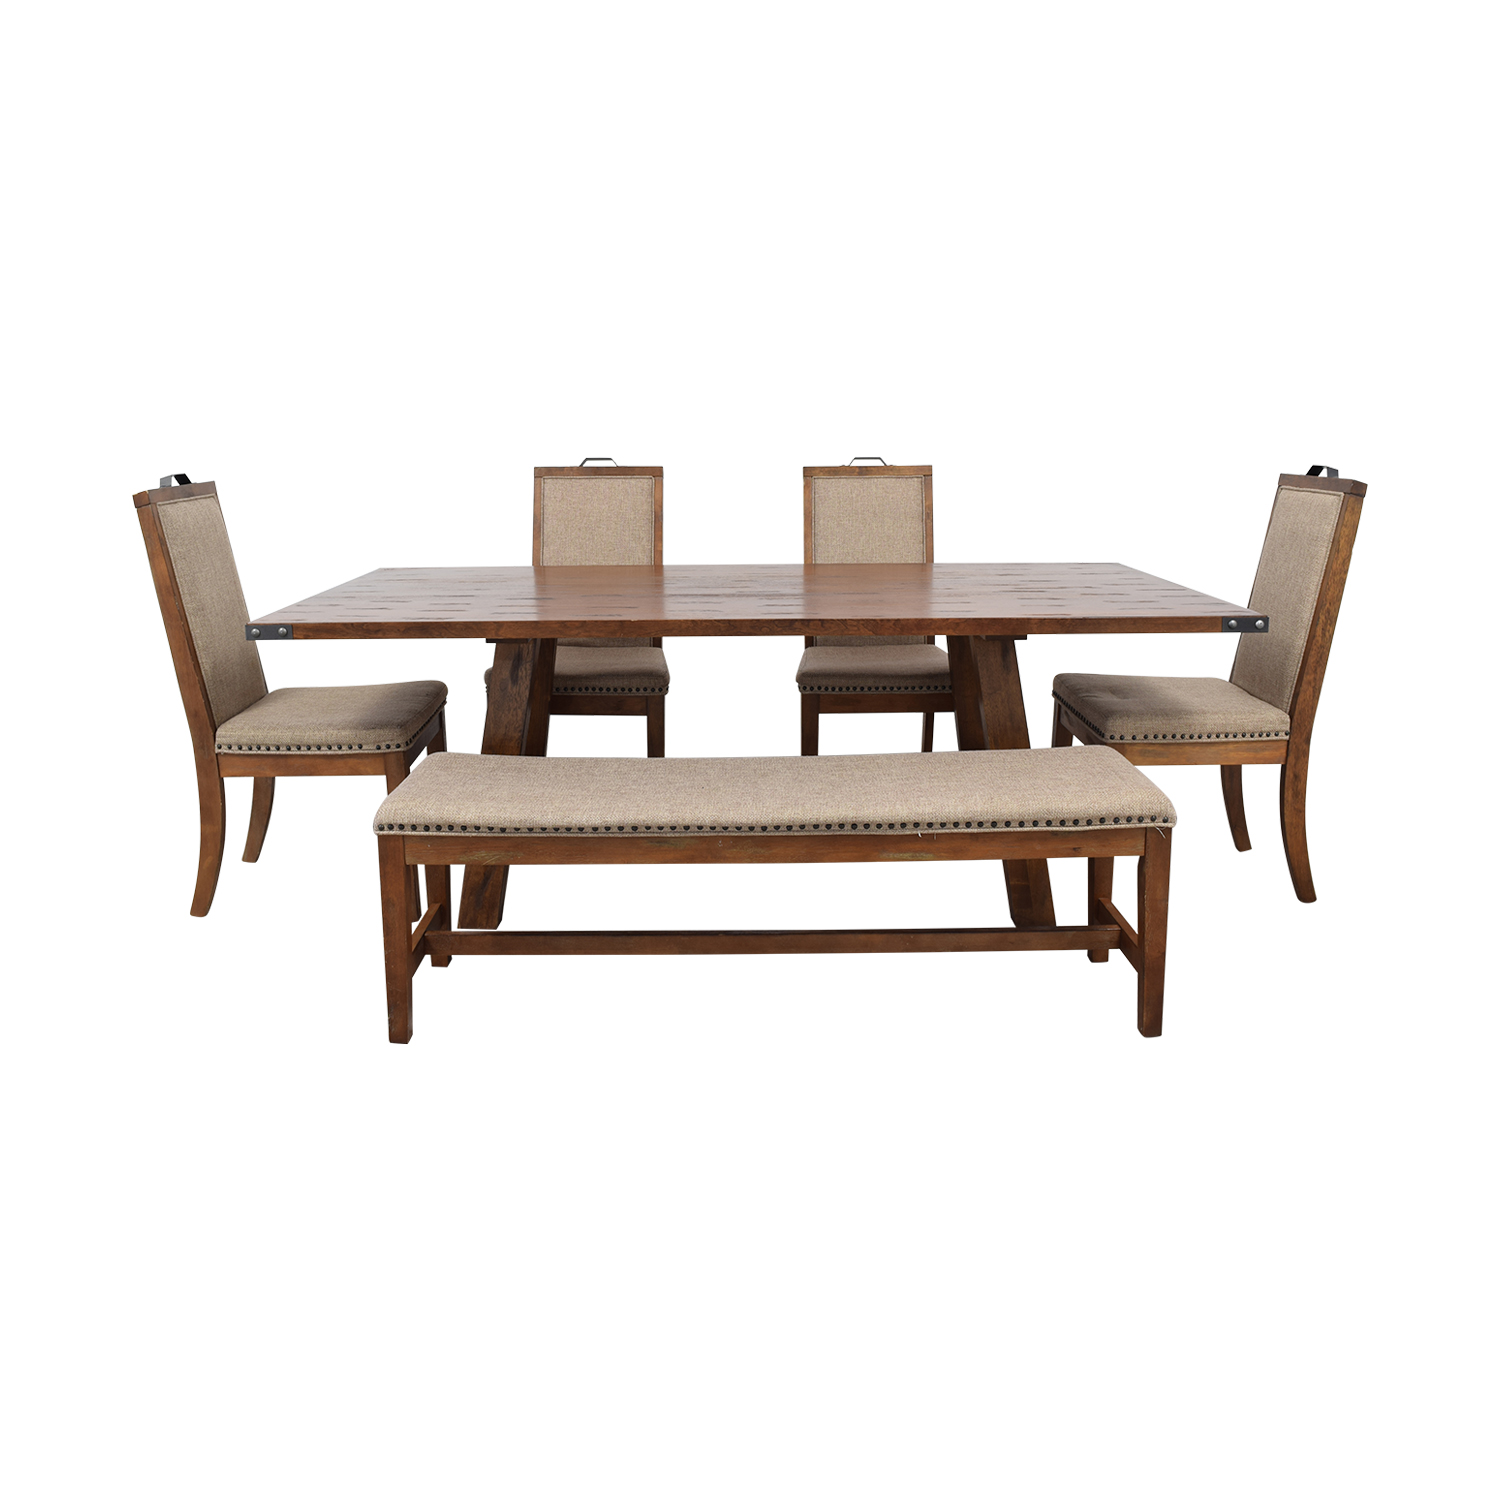 Coaster Fine Furniture Coaster Fine Furniture Wood Dining Set with Upholstered Bench and Chairs discount